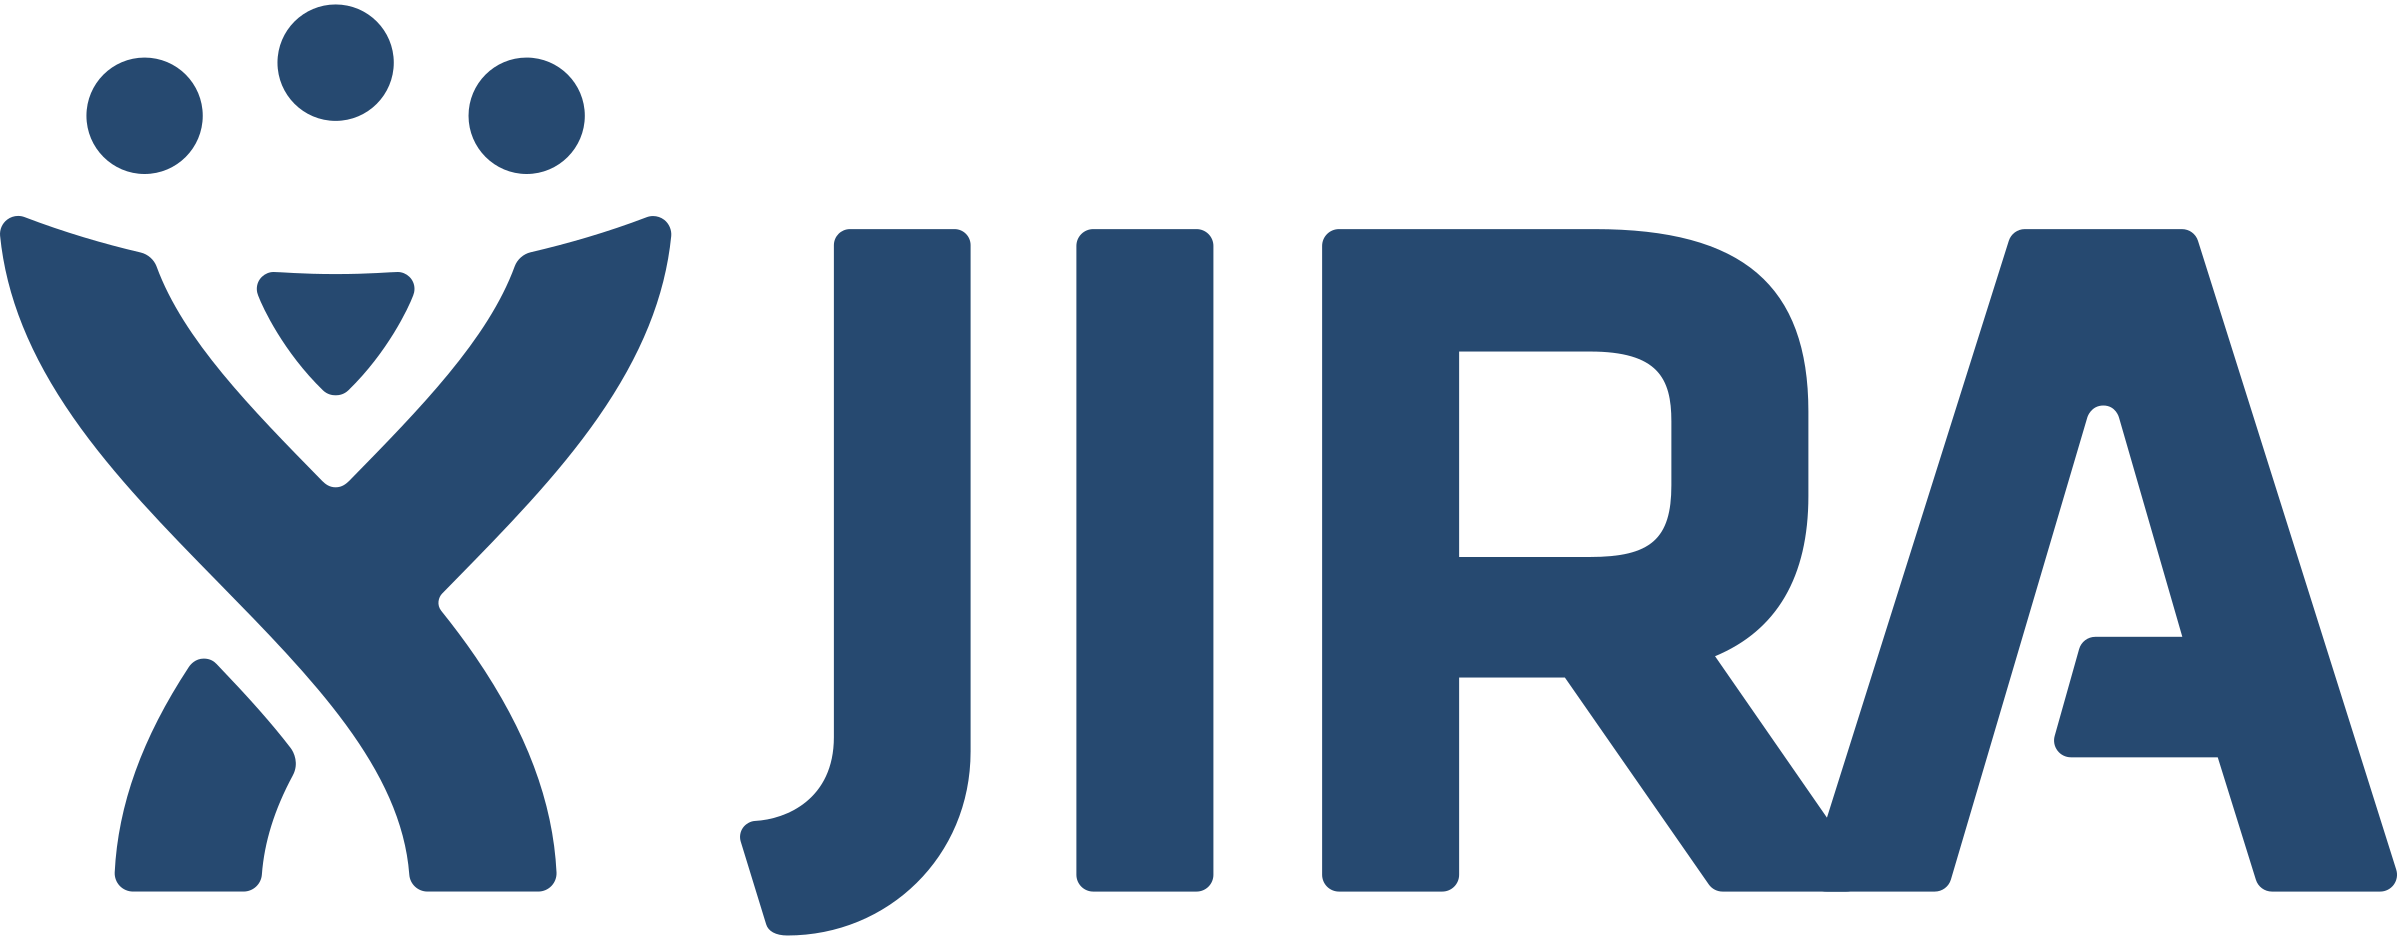 JIRA Logo PNG Transparent & SVG Vector